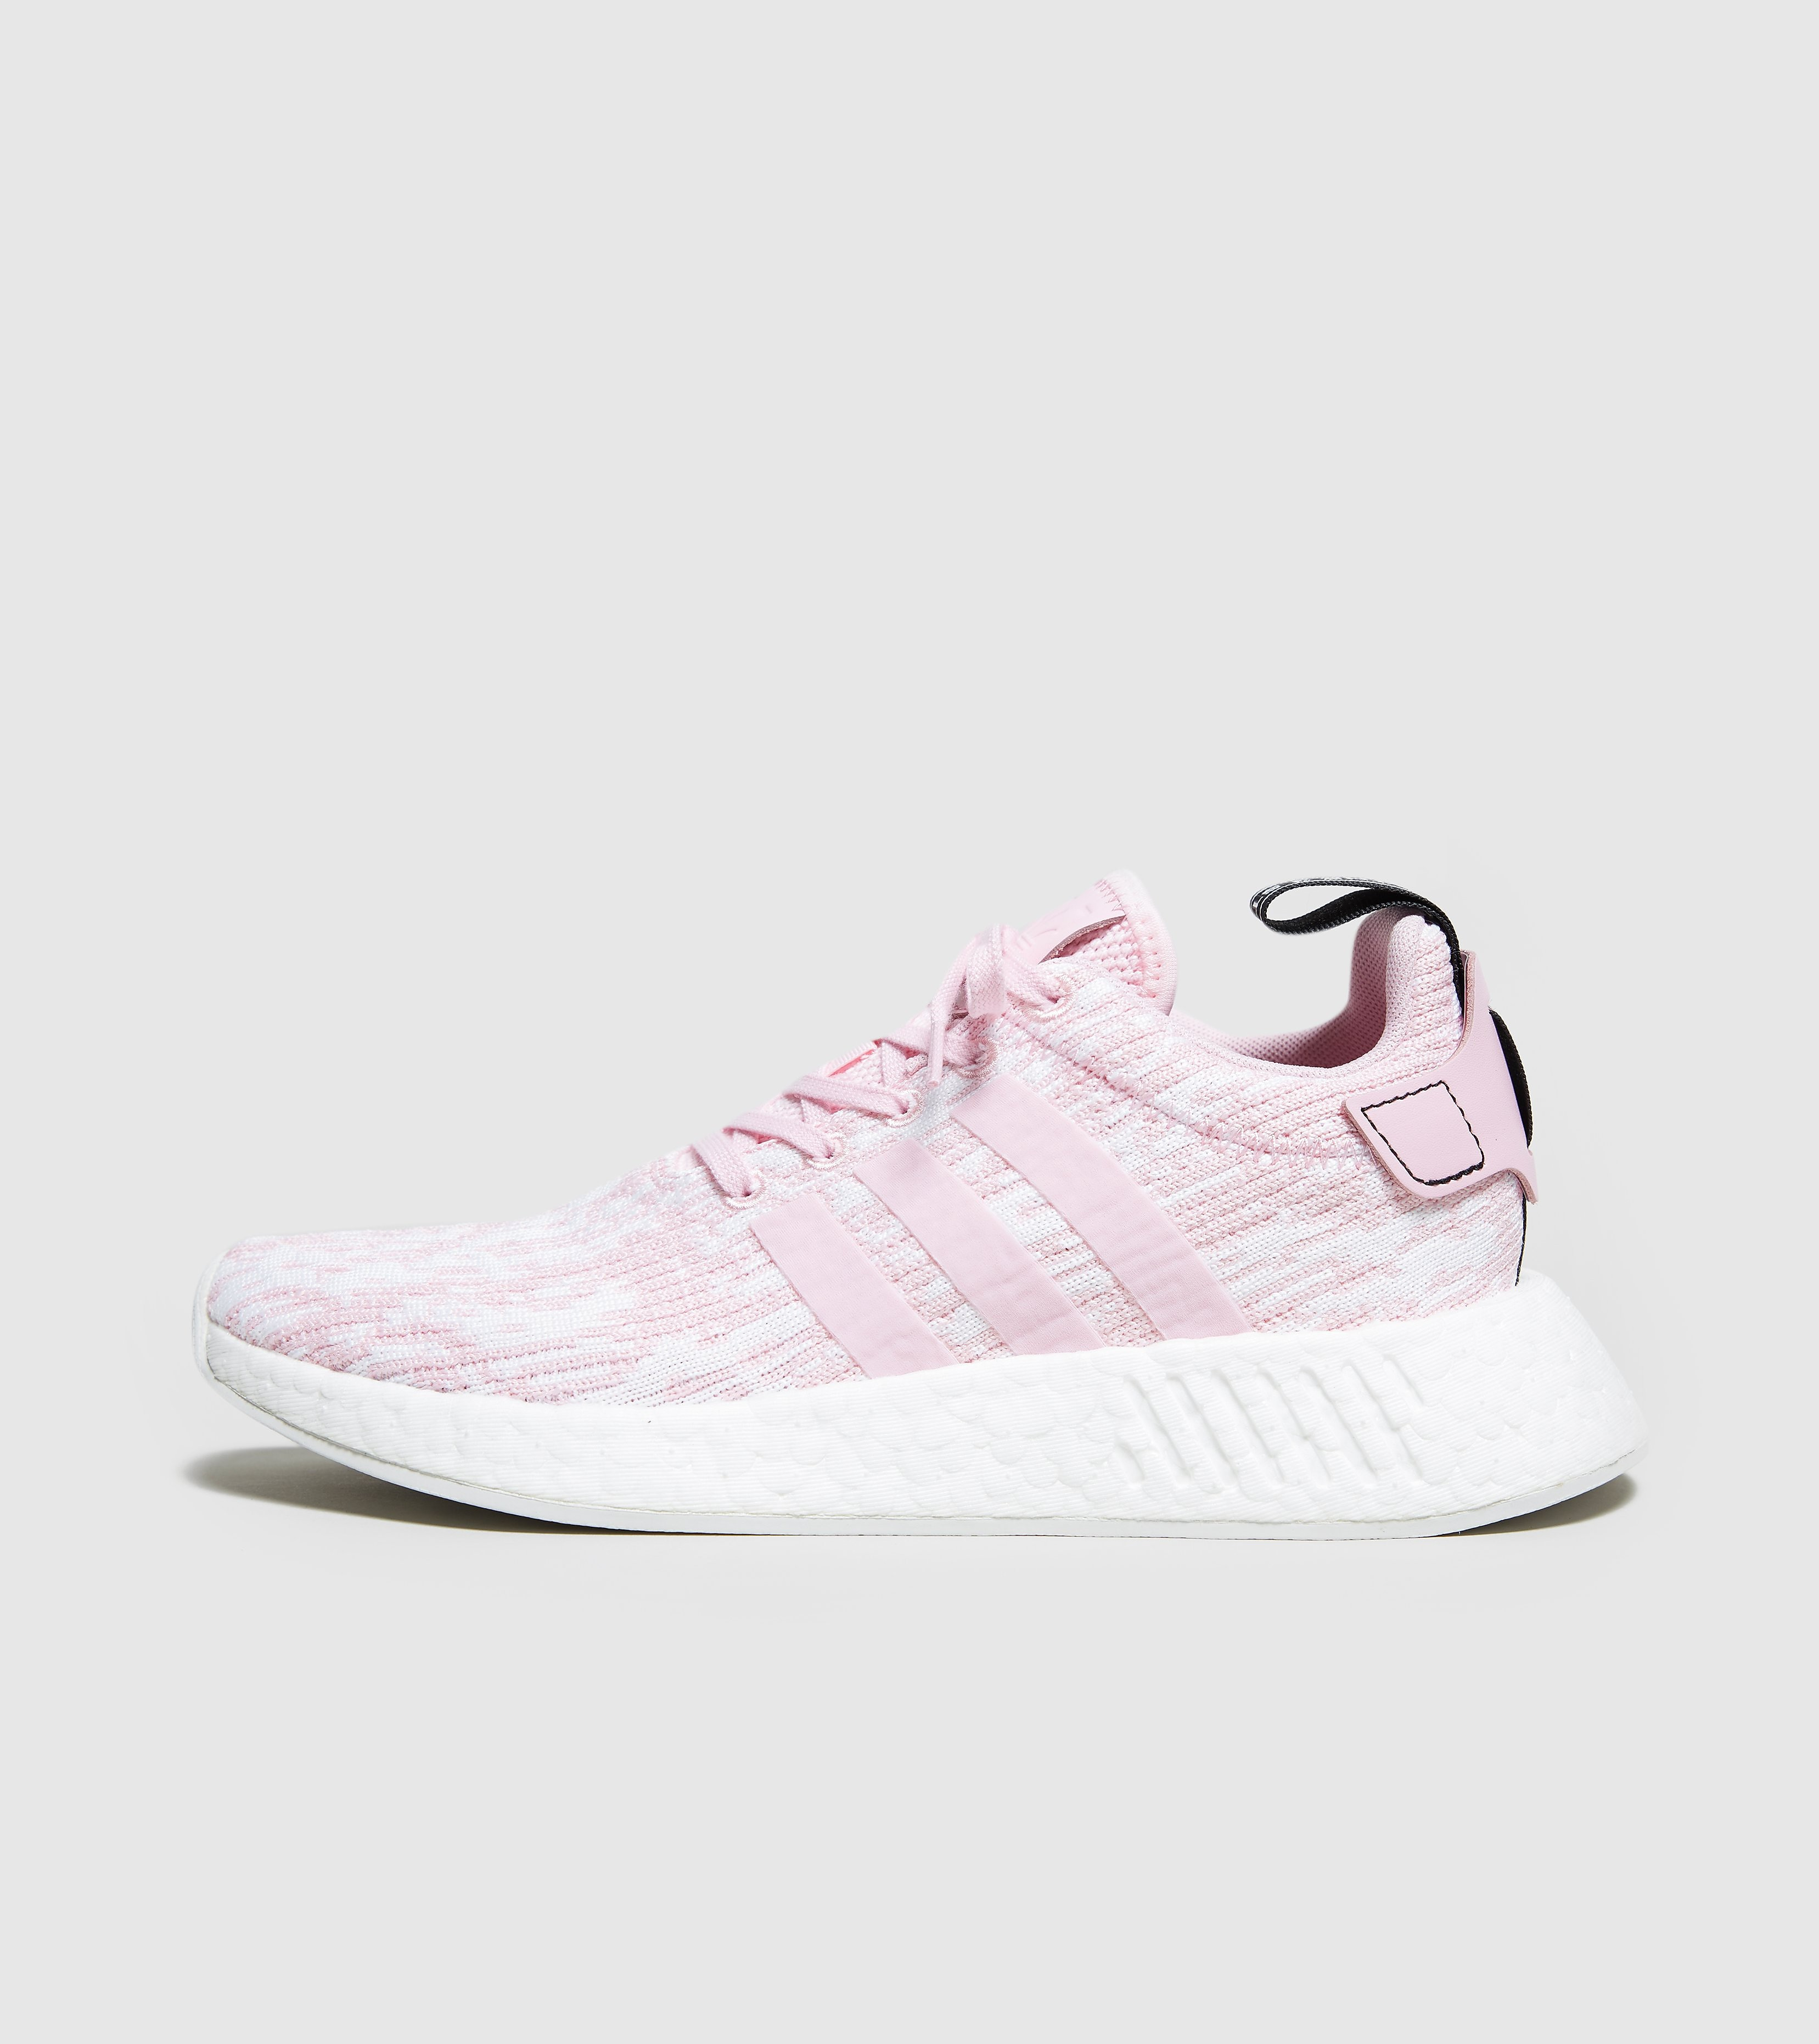 adidas Originals NMD_R2 Women's